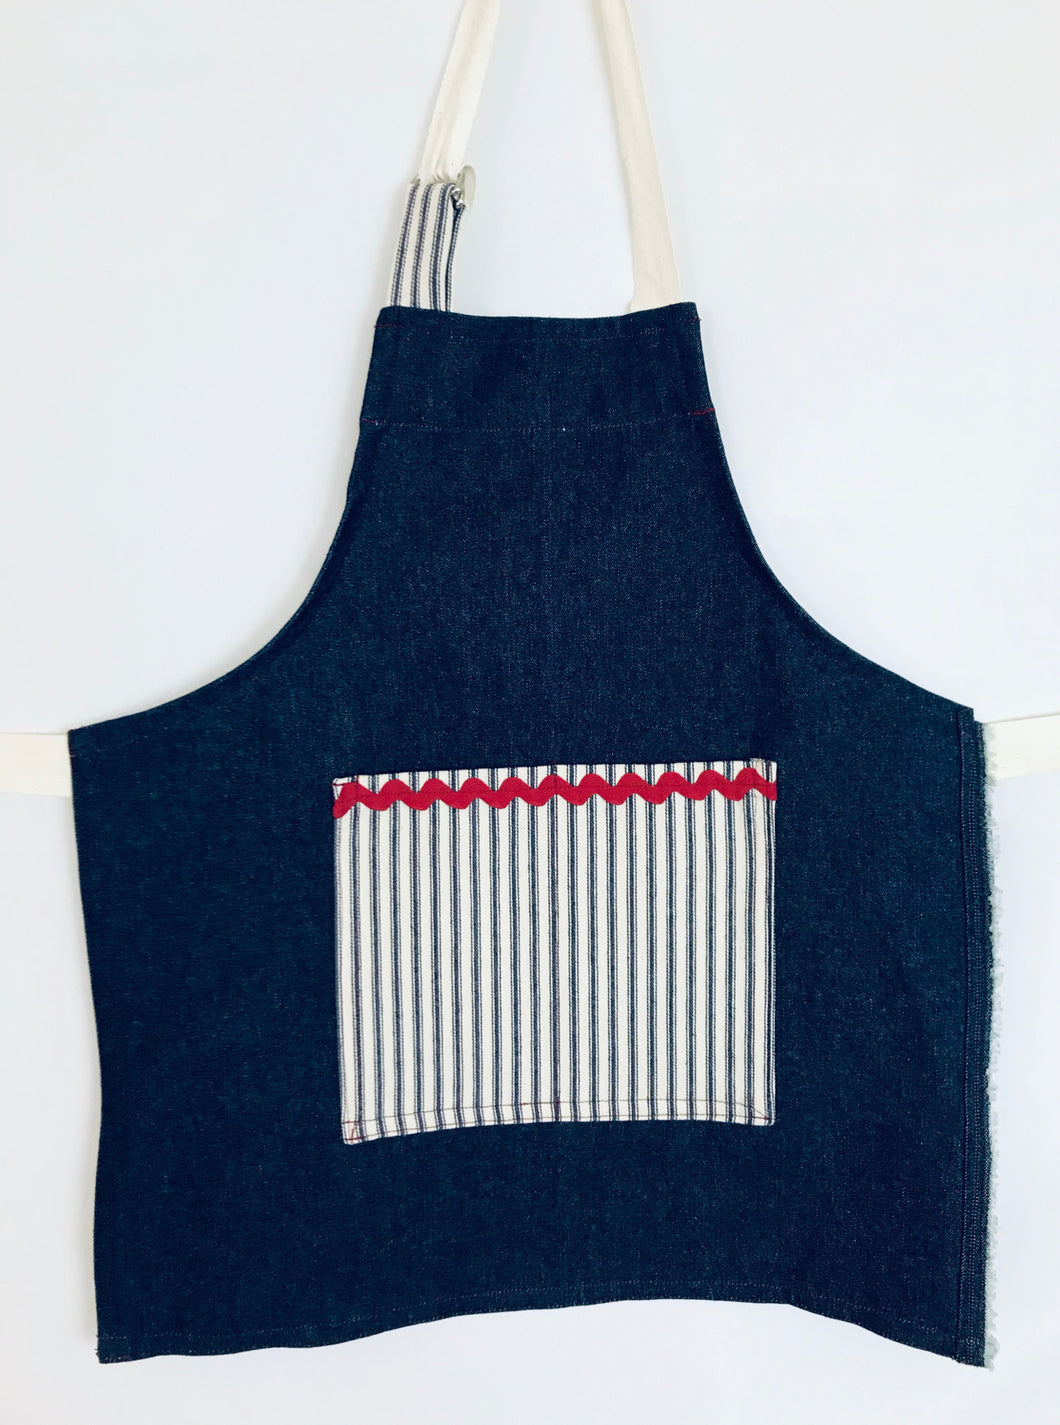 The Younger Creative Soul - Denim with Railroad Stripe Pocket